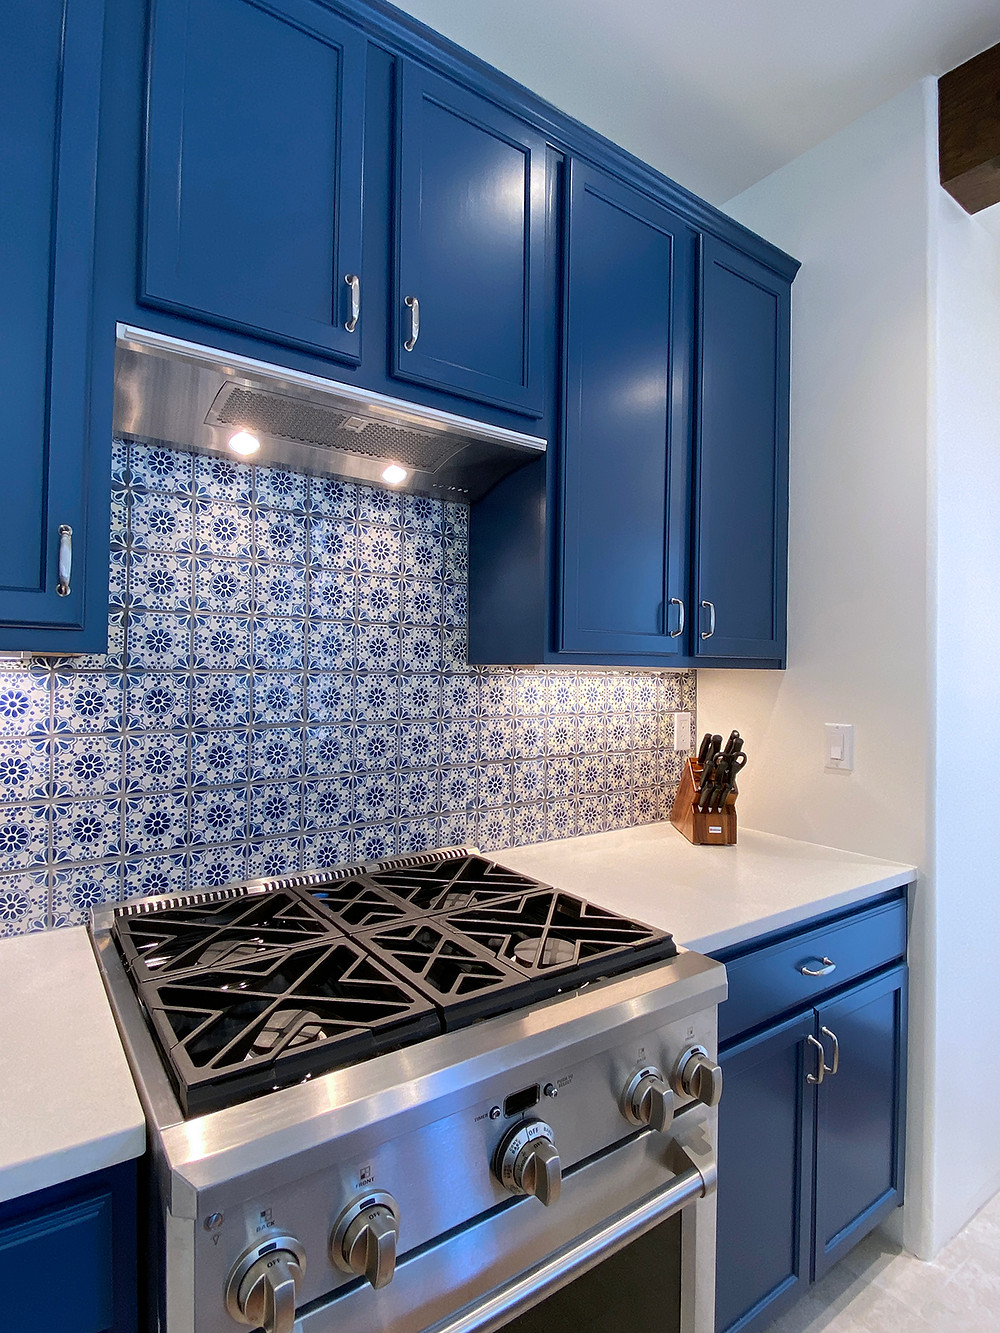 Bright blue kitchen cabinets with patterned blue tile in modern kitchen remodel